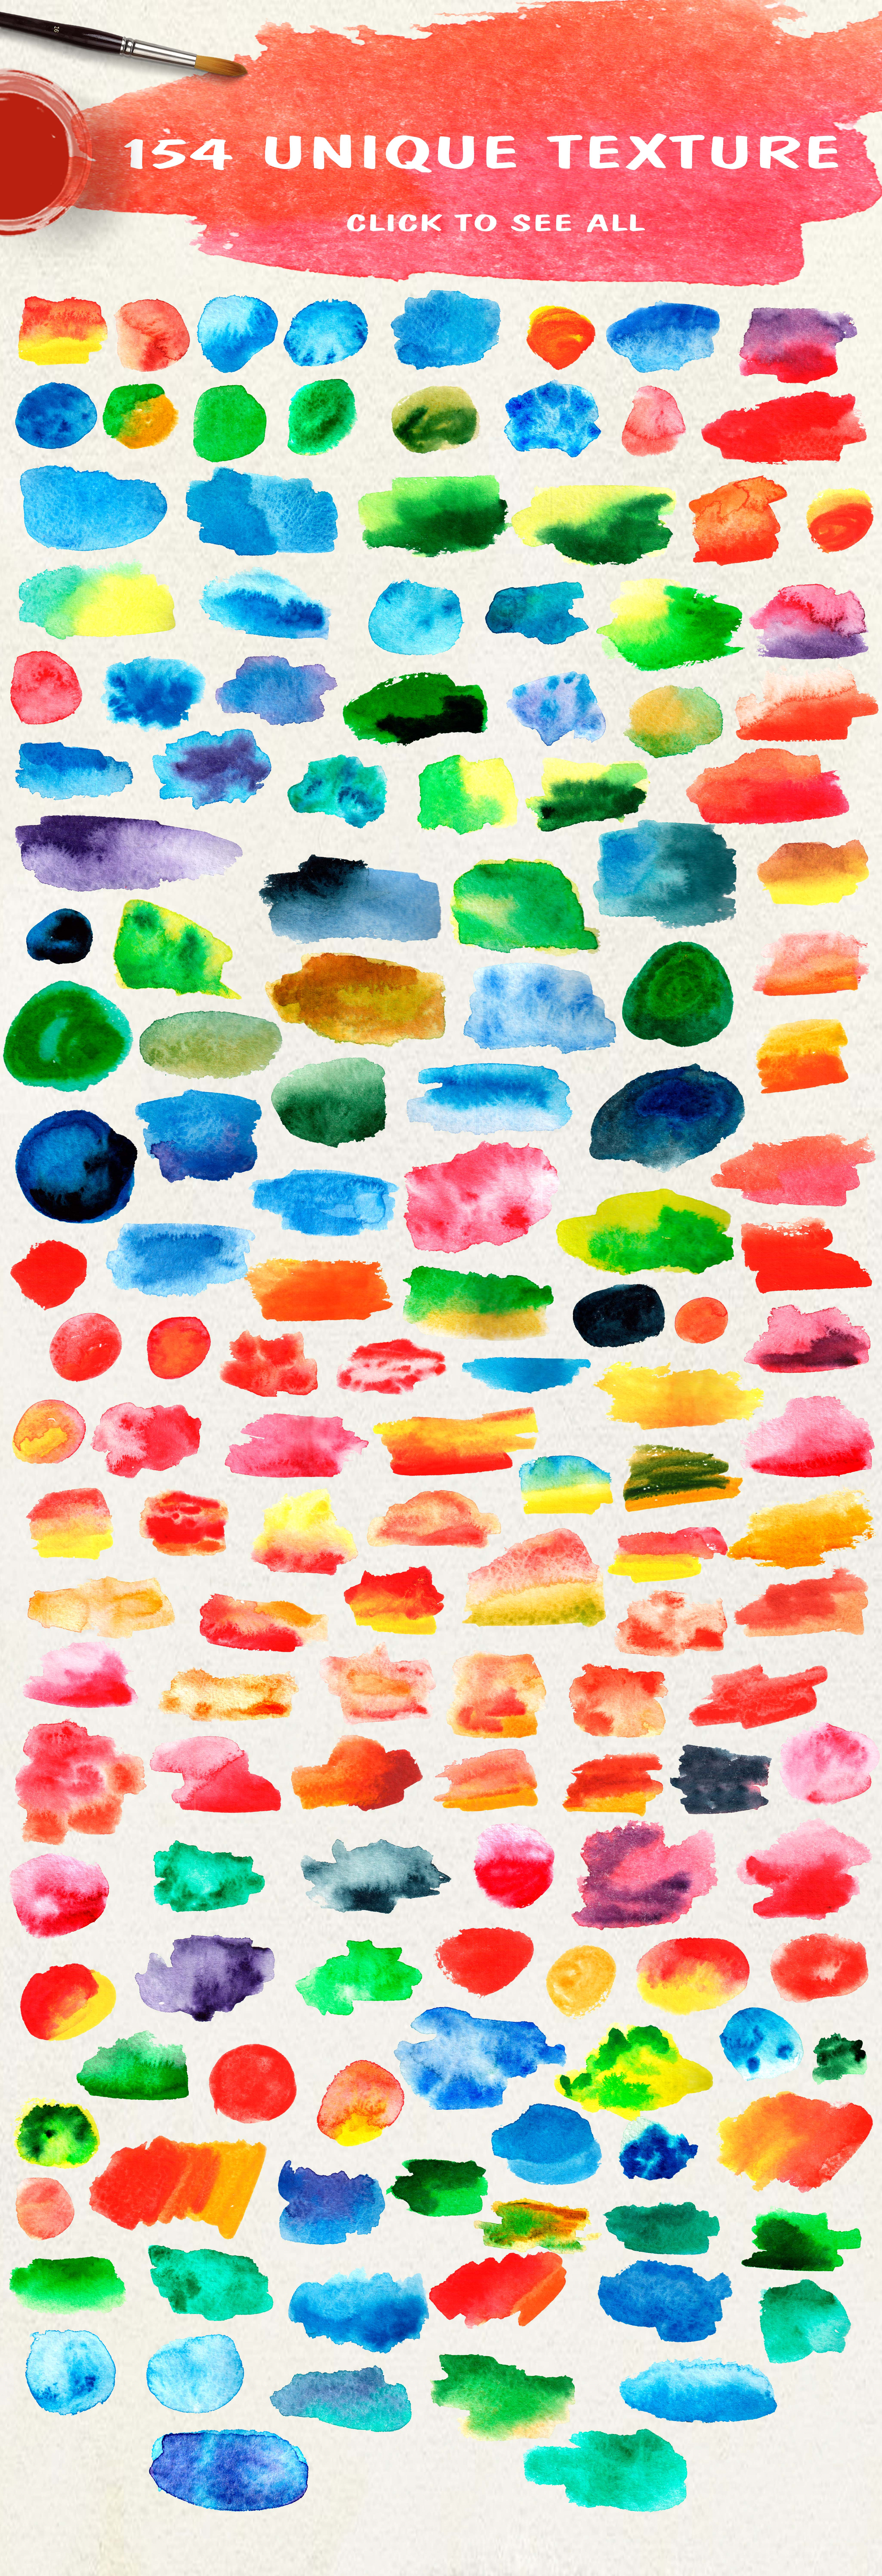 Watercolor Texture Pack Graphic Textures By tregubova.jul - Image 2